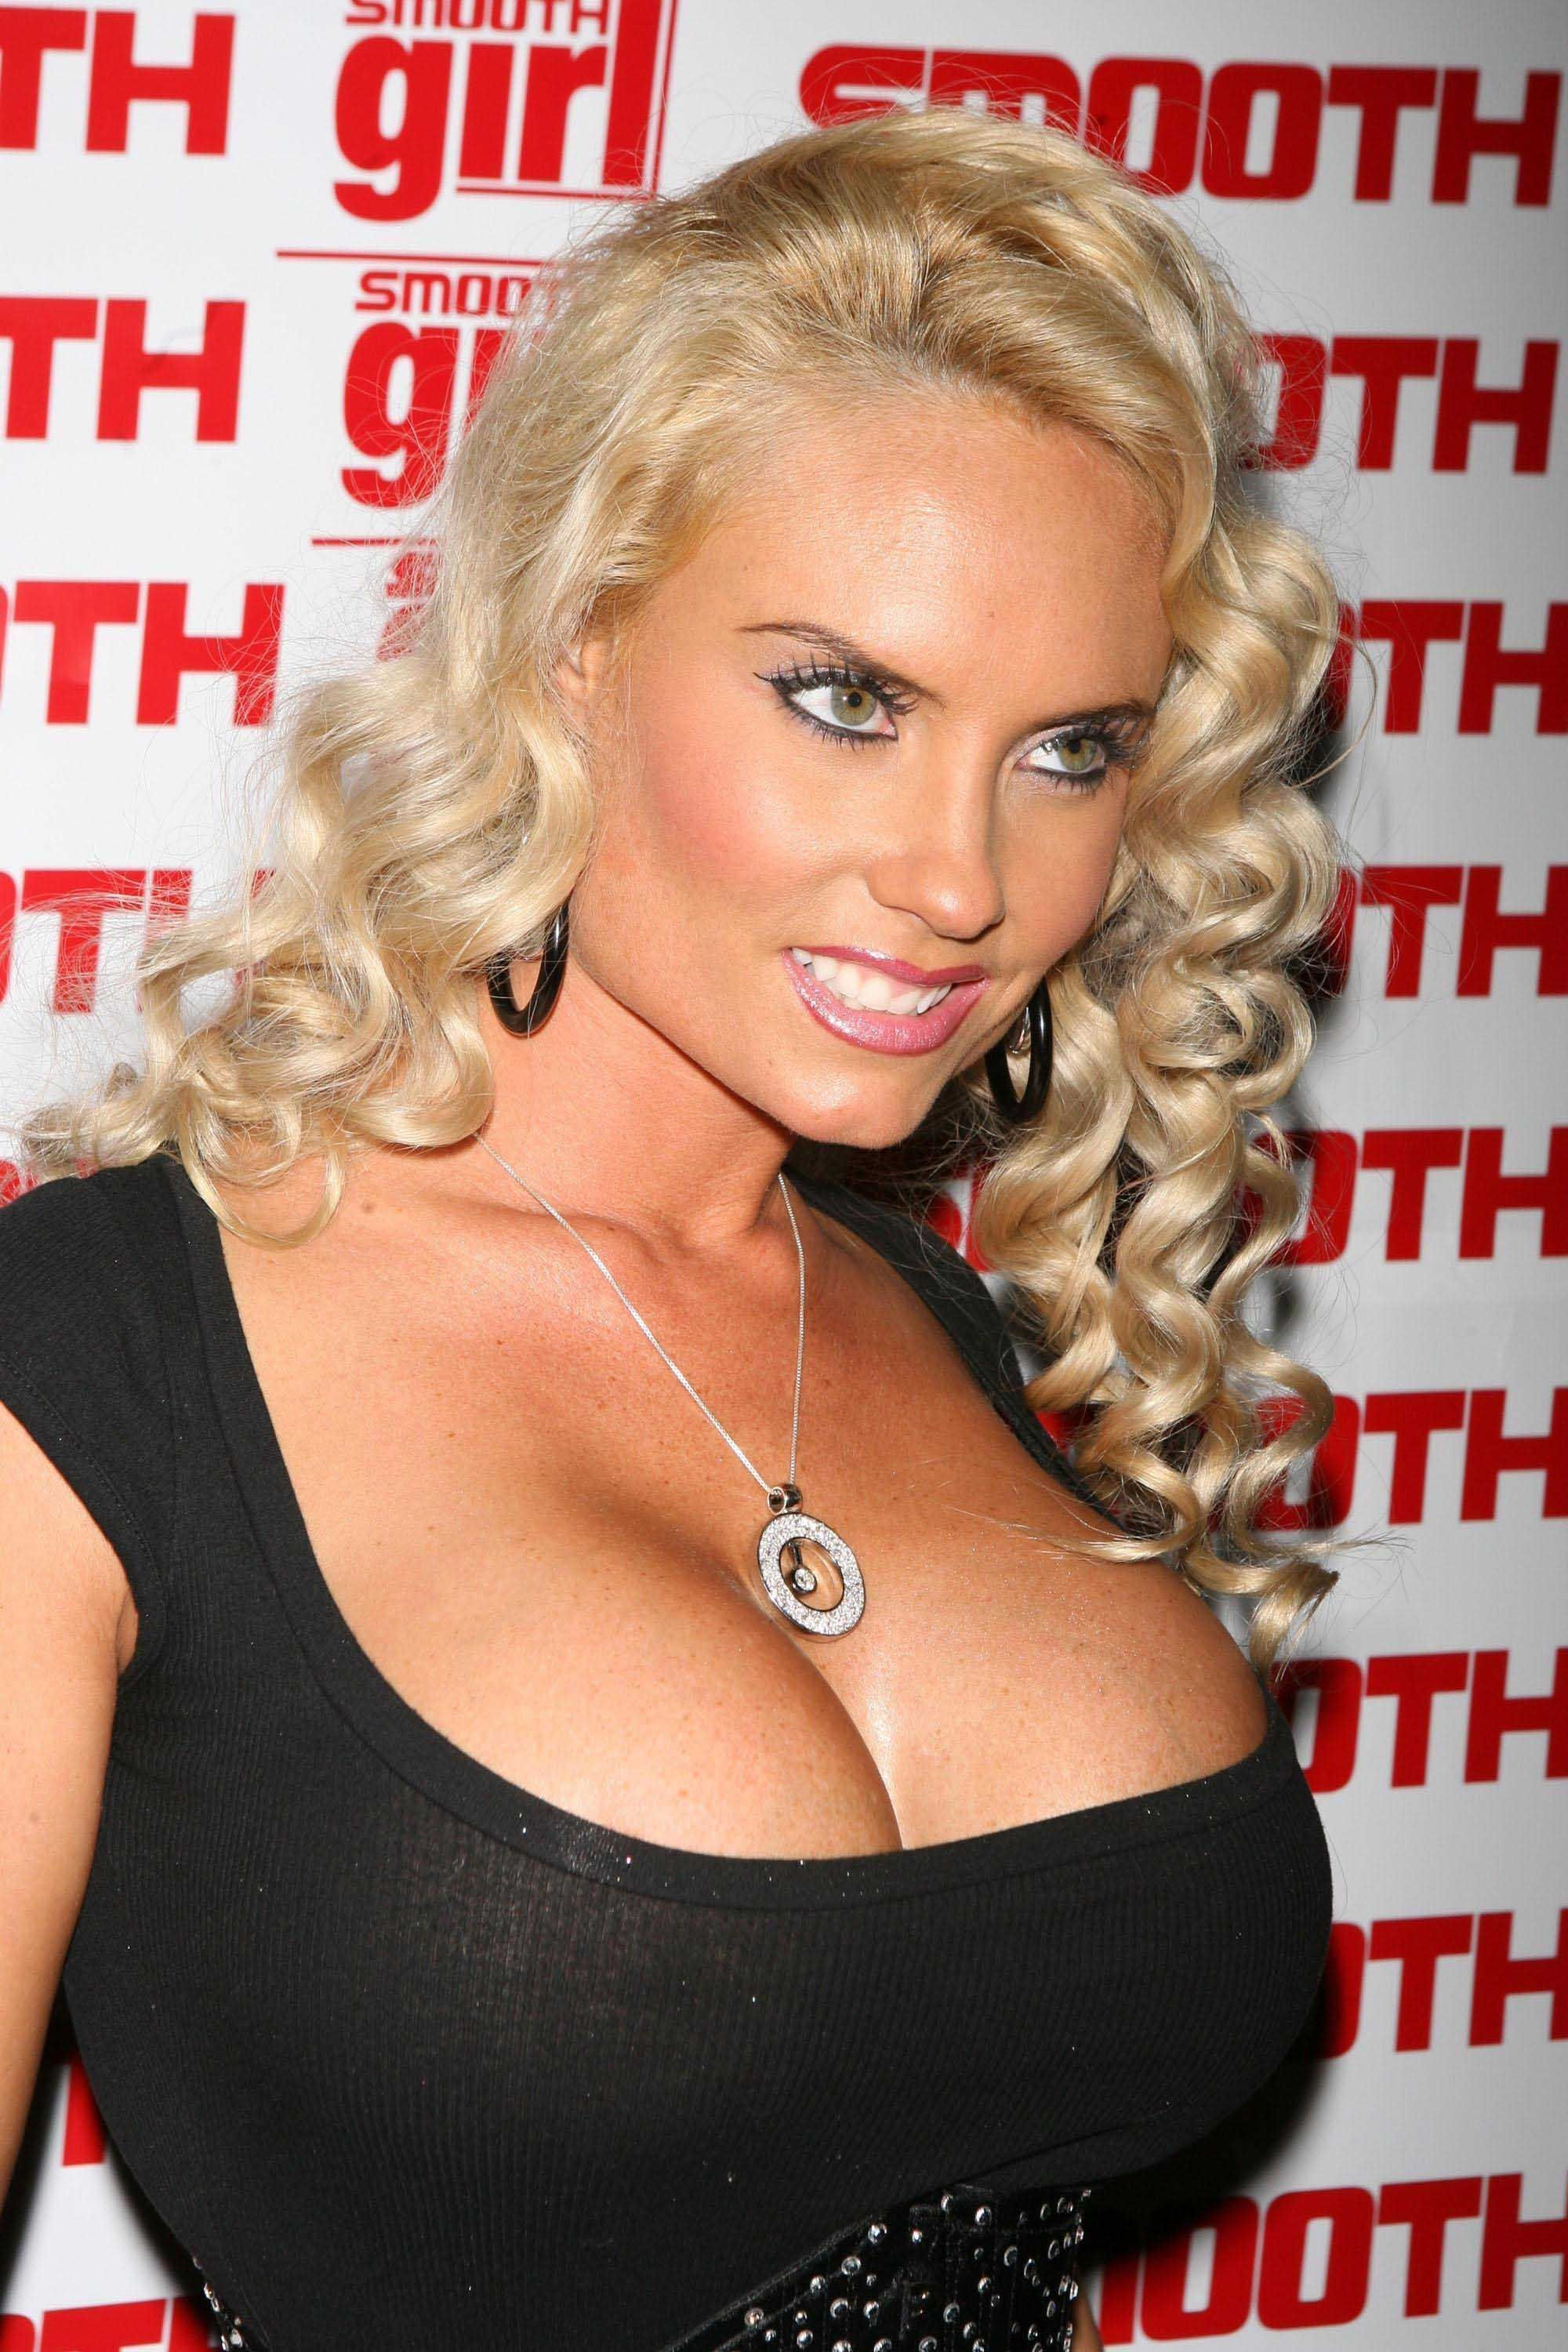 Paparazzi Coco Austin nude (82 photos), Pussy, Is a cute, Instagram, swimsuit 2017